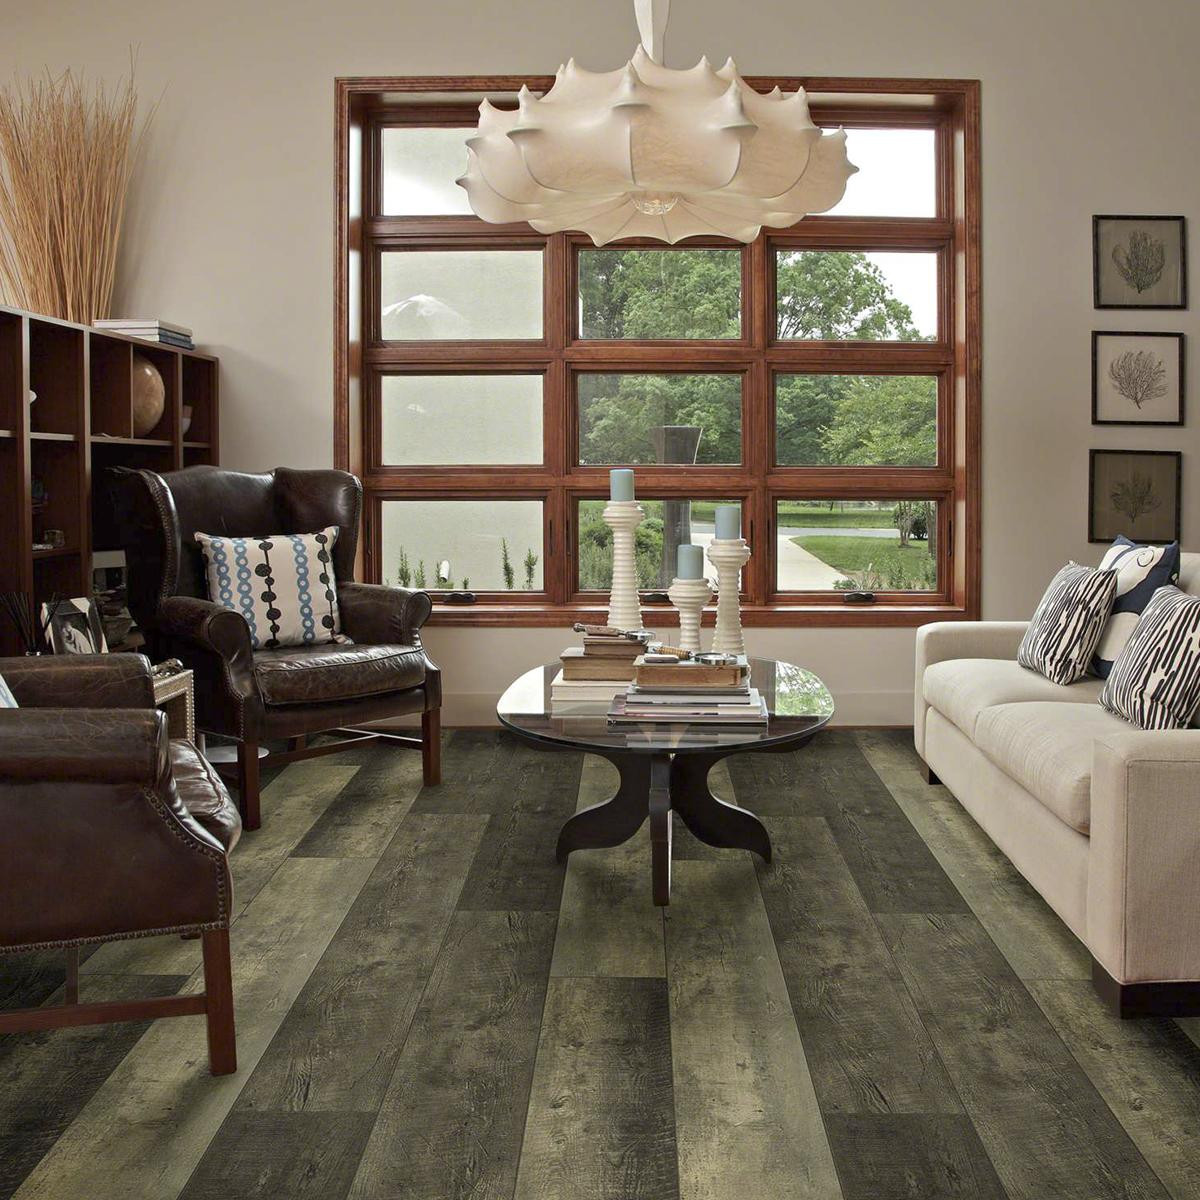 vinyl flooring vs hardwood of shaw titan hd plus antique barnboard 9 x 72 luxury vinyl plank with titan hd plus antique barnboard 9 x 72 luxury vinyl plank